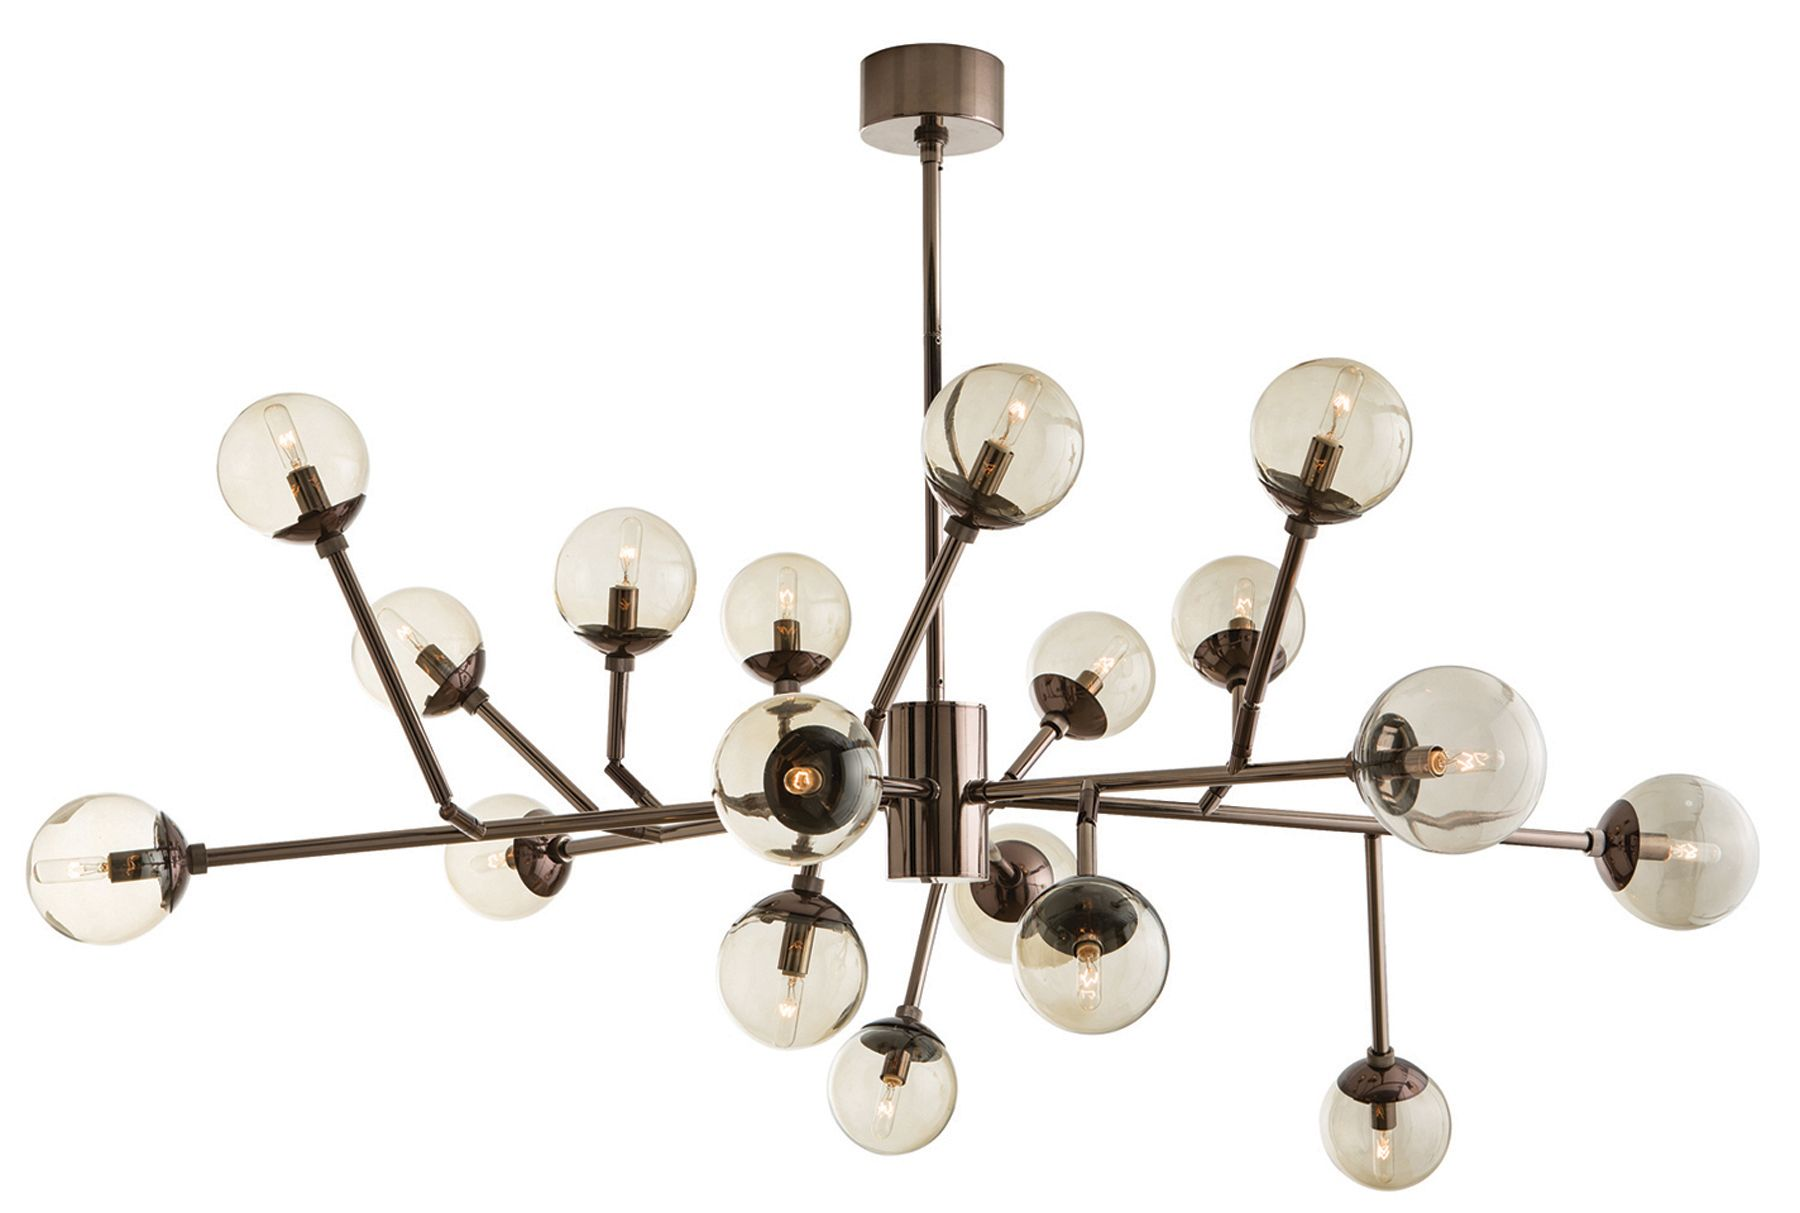 Dallas Chandelier features an 18-light cluster with 12 adjustable arms in a Brown Nickel or Vintage Brass finish. Eighteen 25 watt, 120 volt B10 type candelabra base incandescent bulbs are required, but not included. UL listed. Suitable for damp locations. 58 inch width x 18.5 inch height x 50.5 inch maximum length.